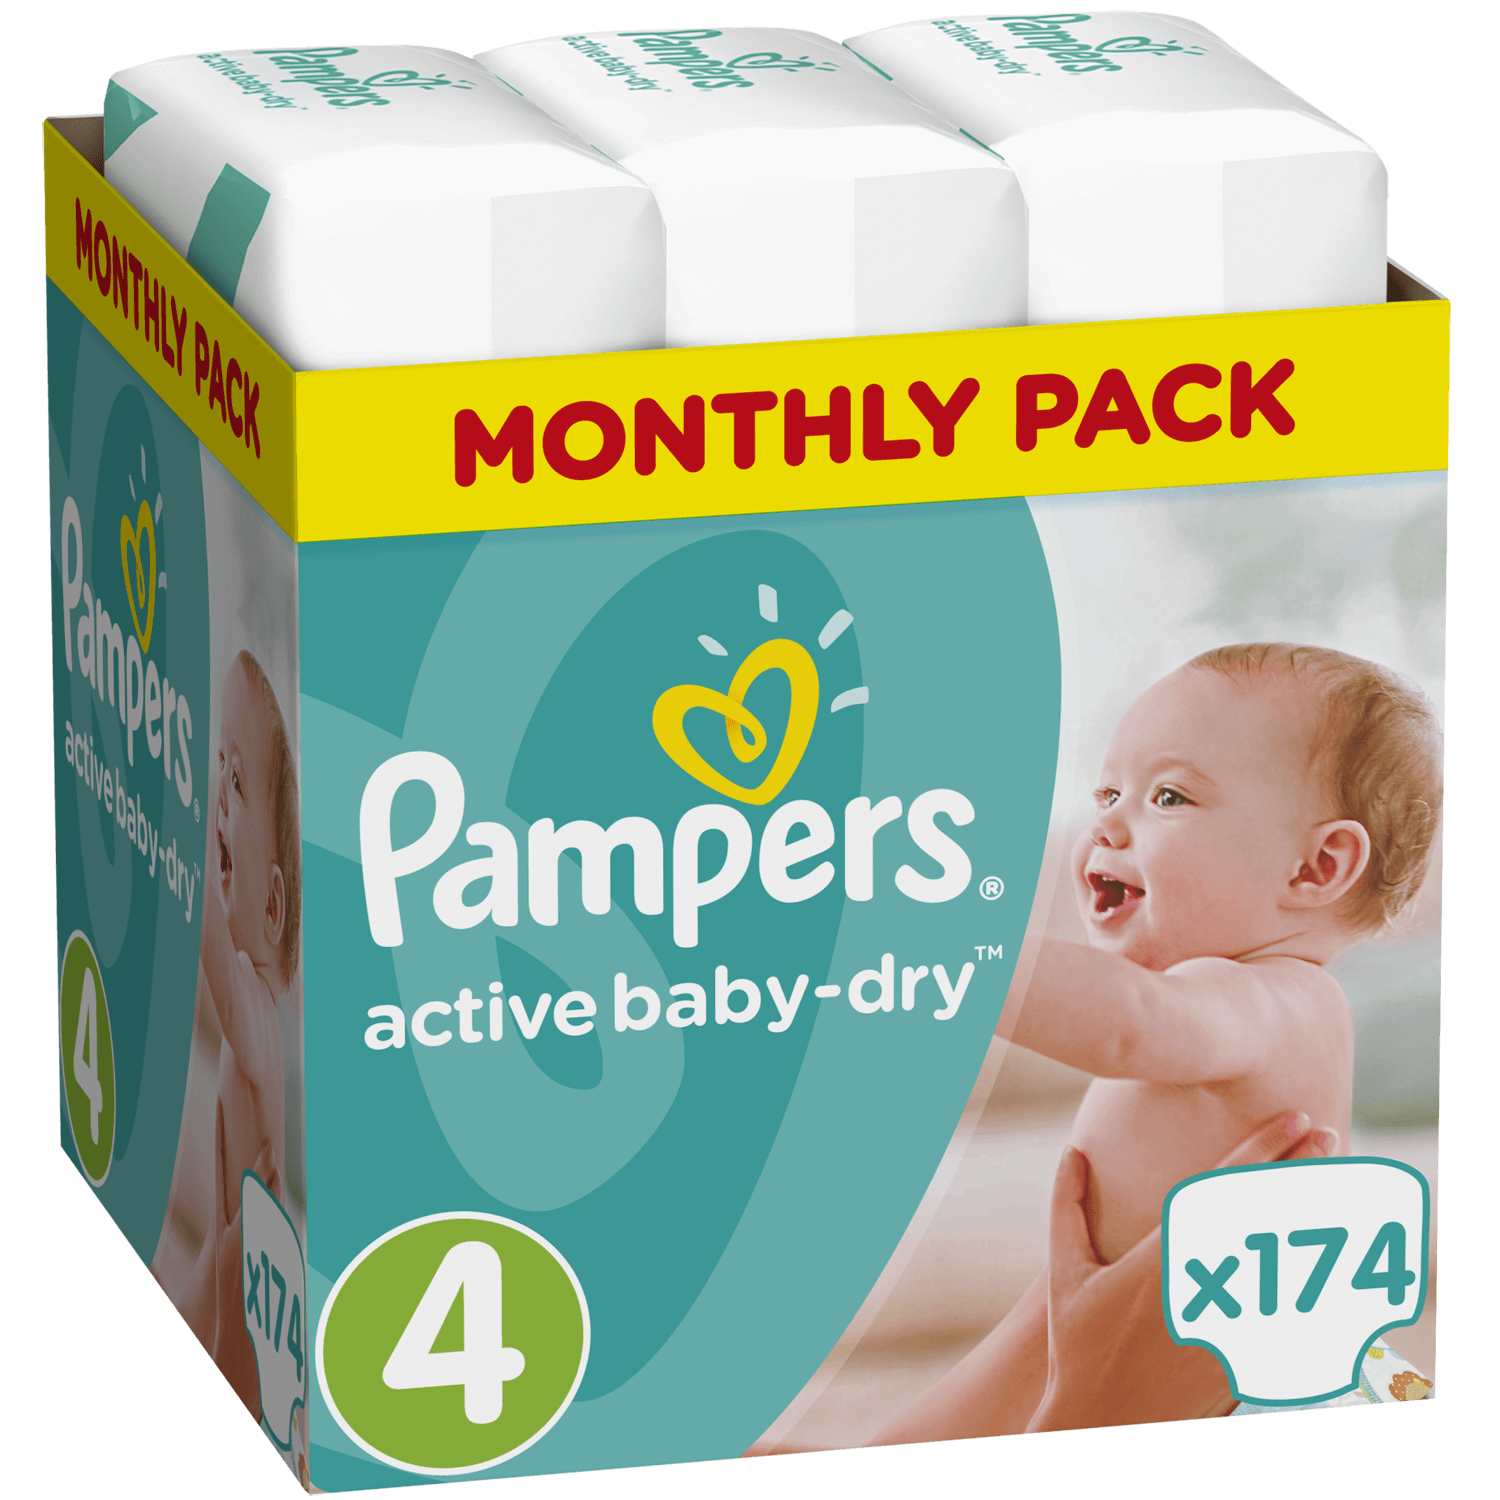 Pampers Active Baby Dry Monthly Pack No4 Maxi (8-14kg) 174 πάνες, μόνο 0,23€ / π μητέρα παιδί   περιποίηση για το μωρό   πάνες για το μωρό